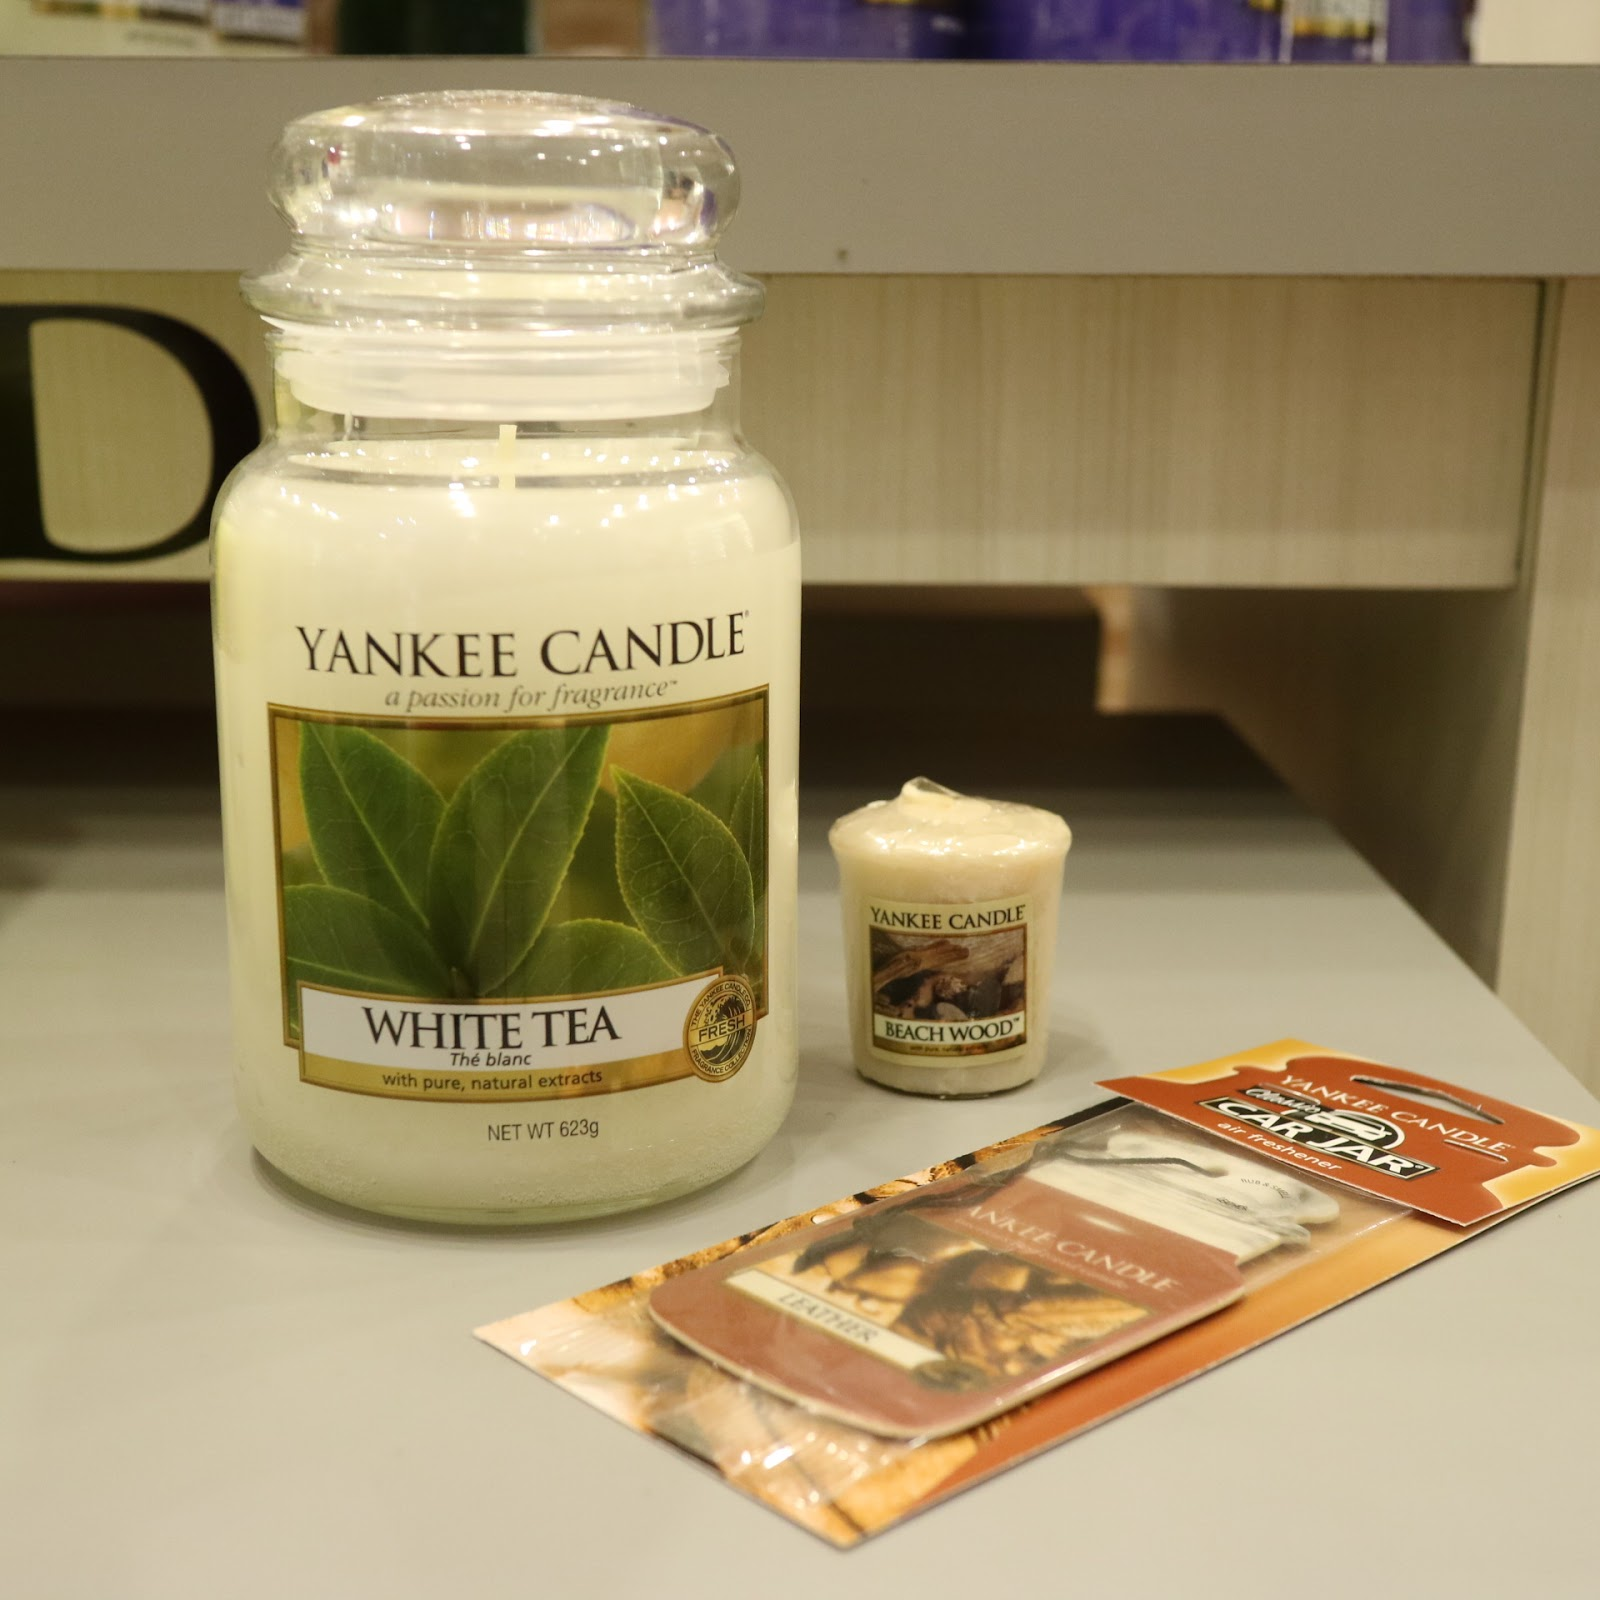 GASTRONOMY by Joy: Yankee Candle Now in Manila